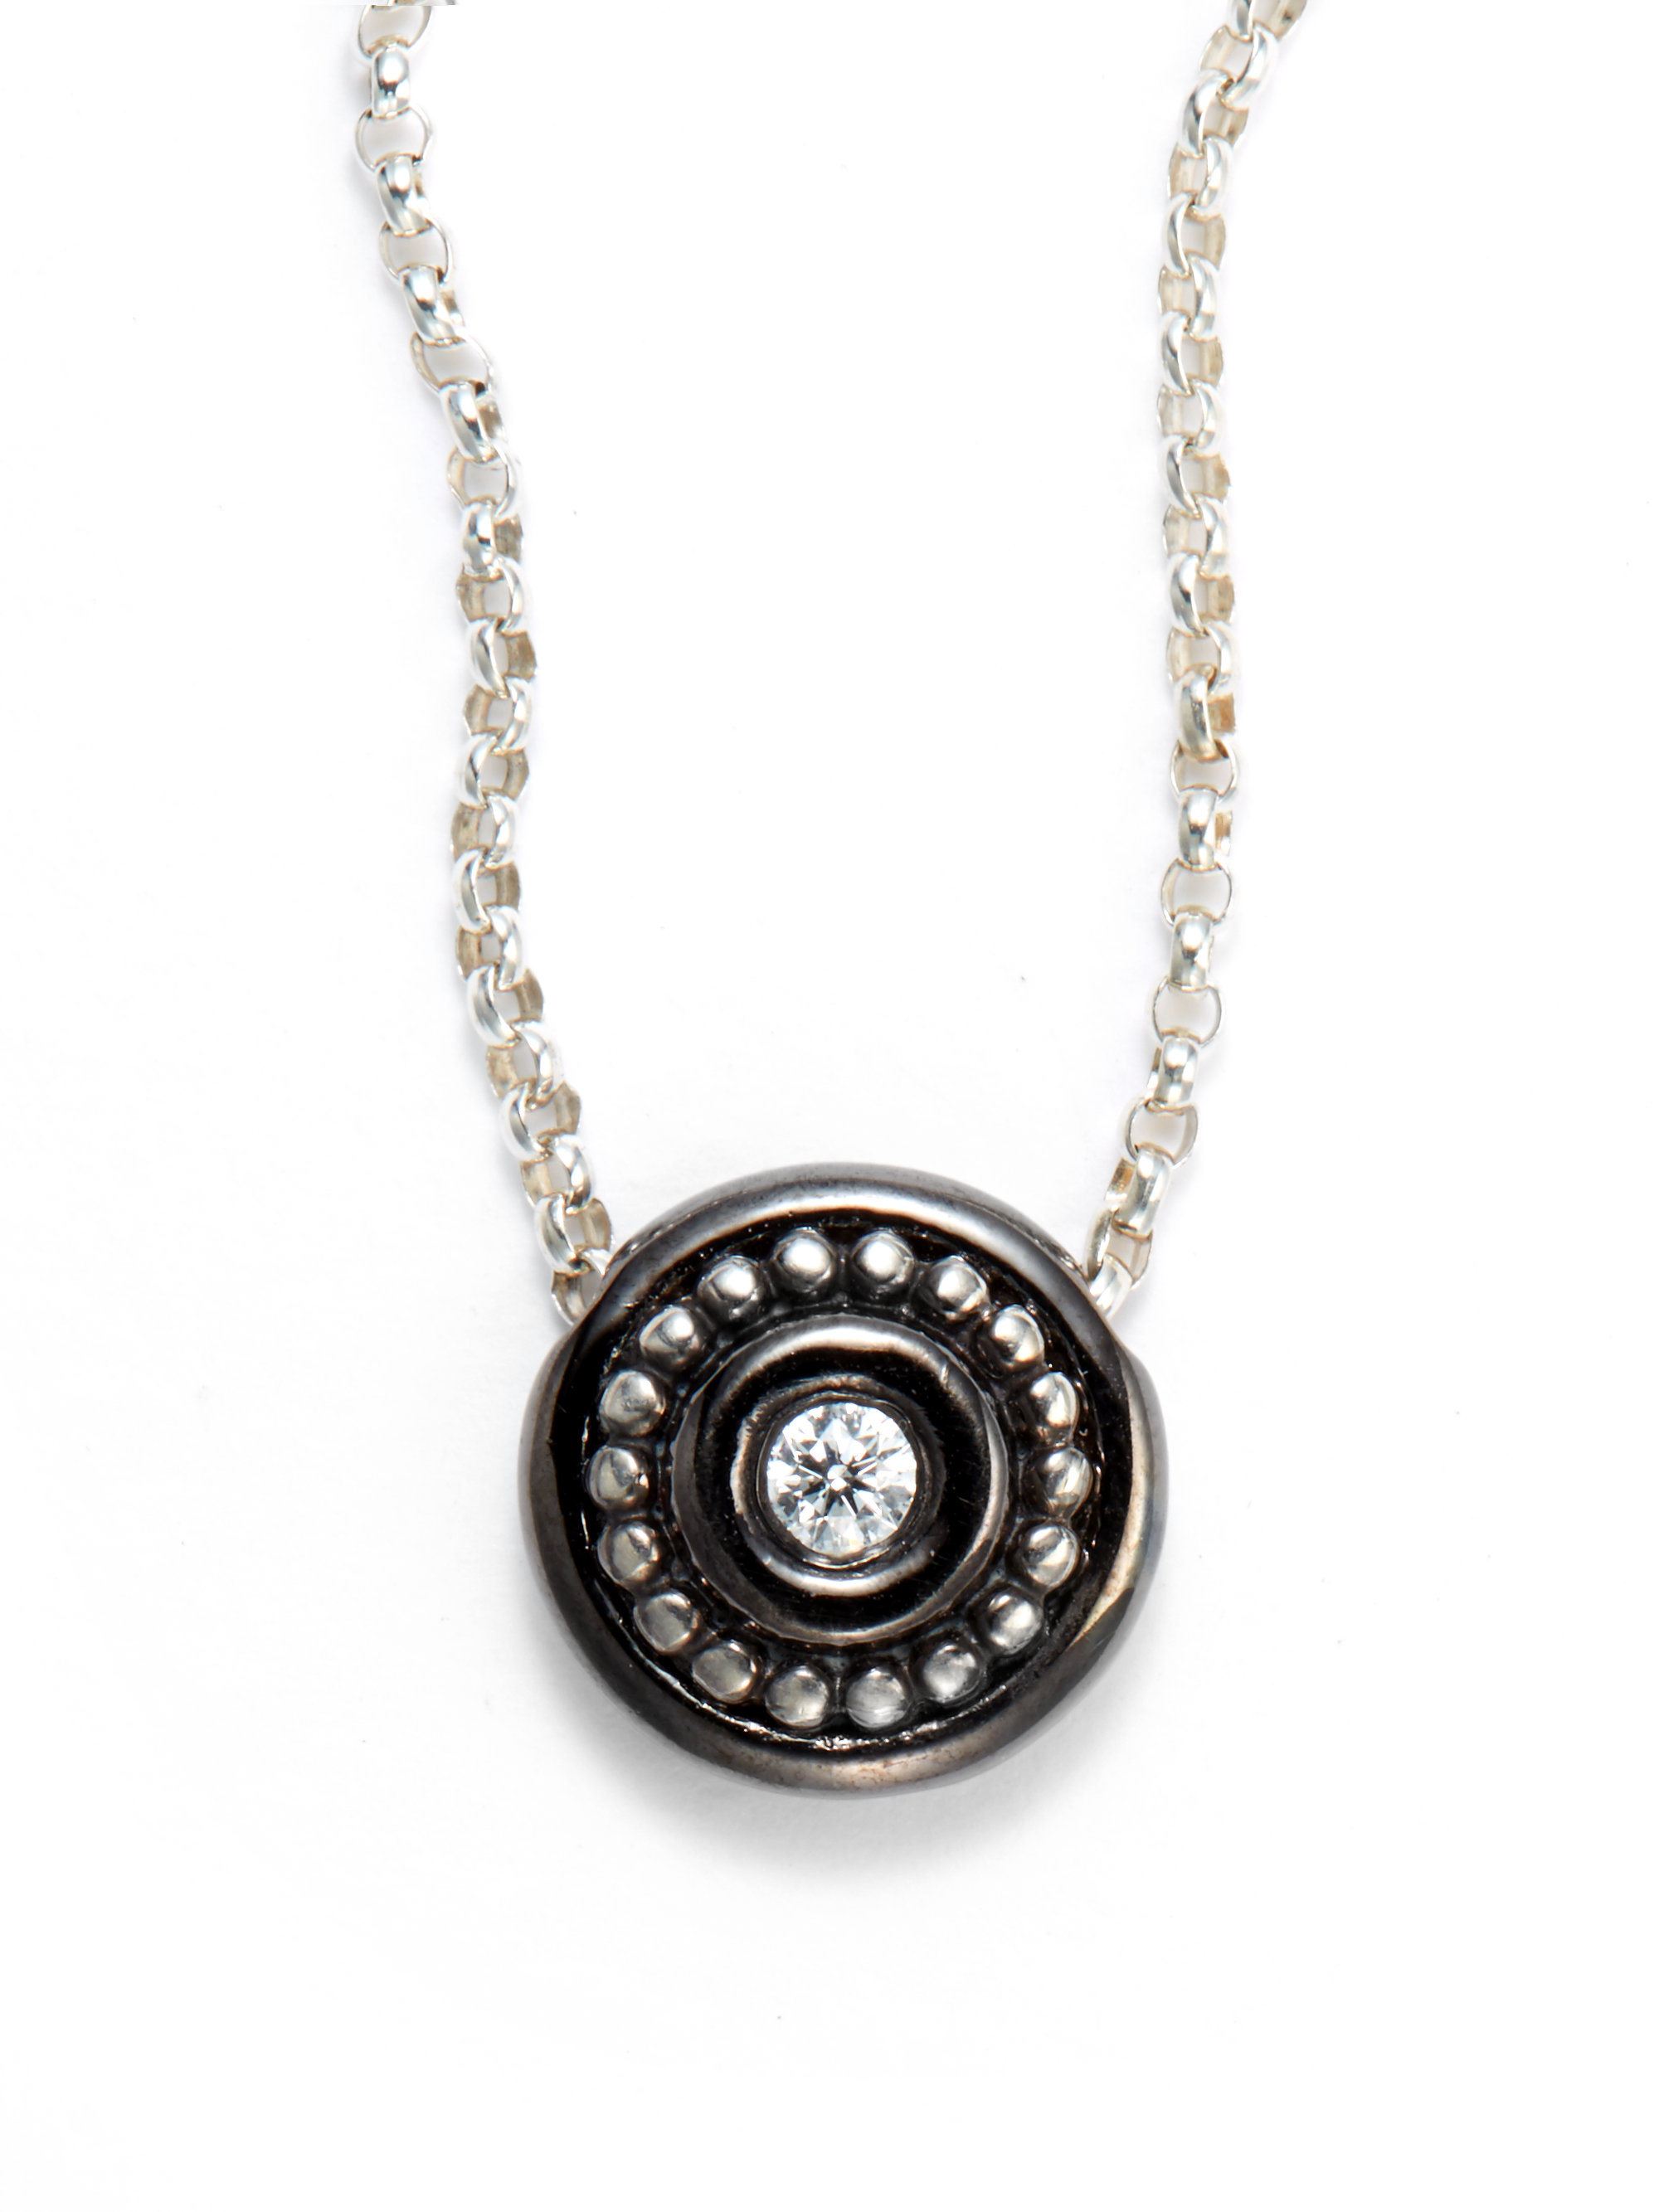 medallion products eye sisco clsoe berluti necklace circle seeing the pendant